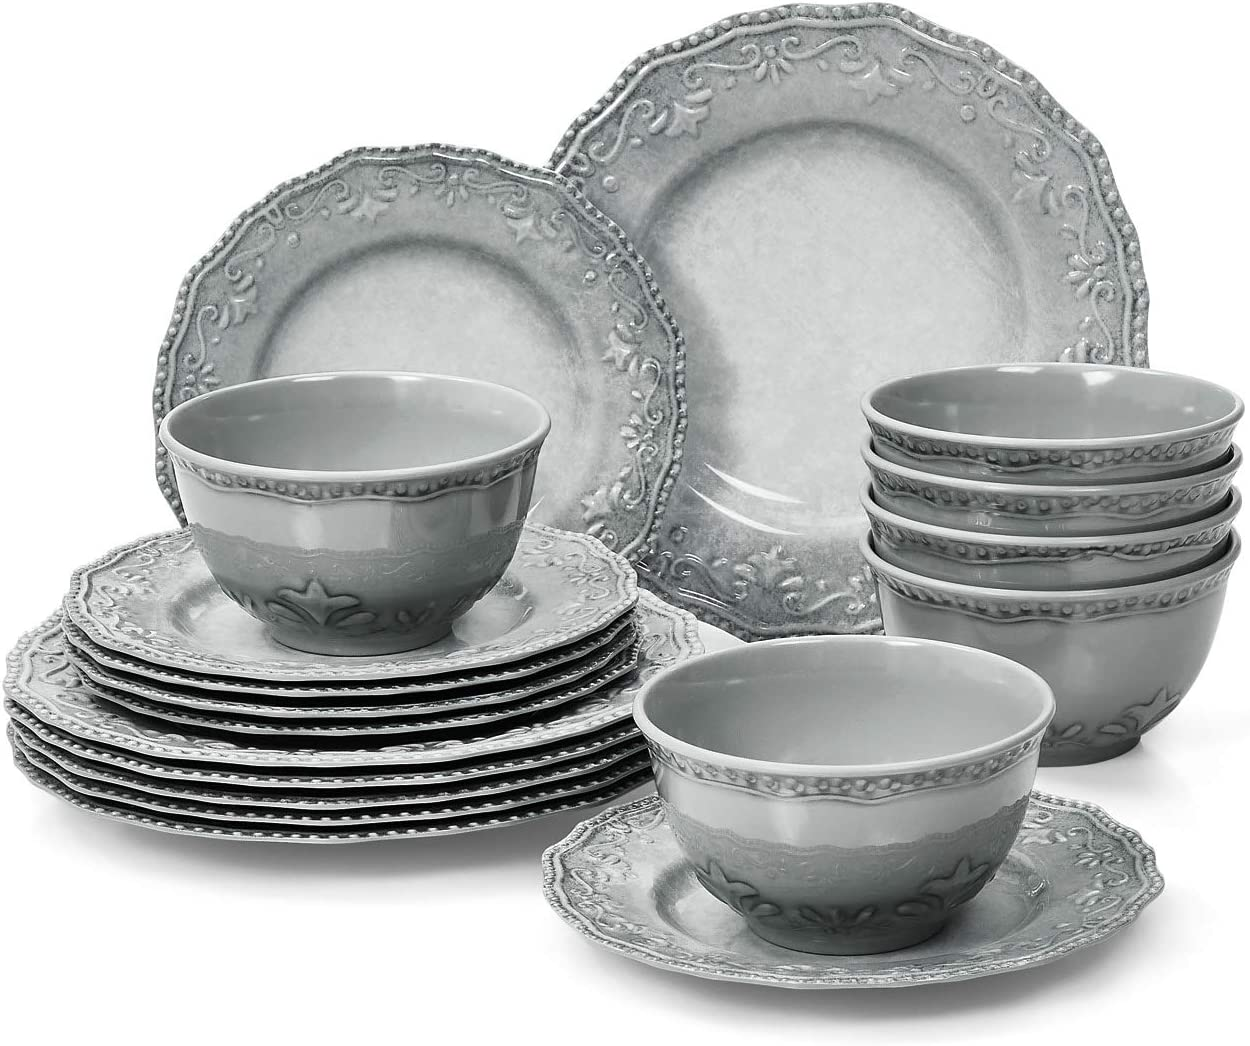 TP Dinnerware Set, 18-Piece Melamine Dishes Set, Dinner Service for 6 with Bowls and Salad Dinner Plates, Gray